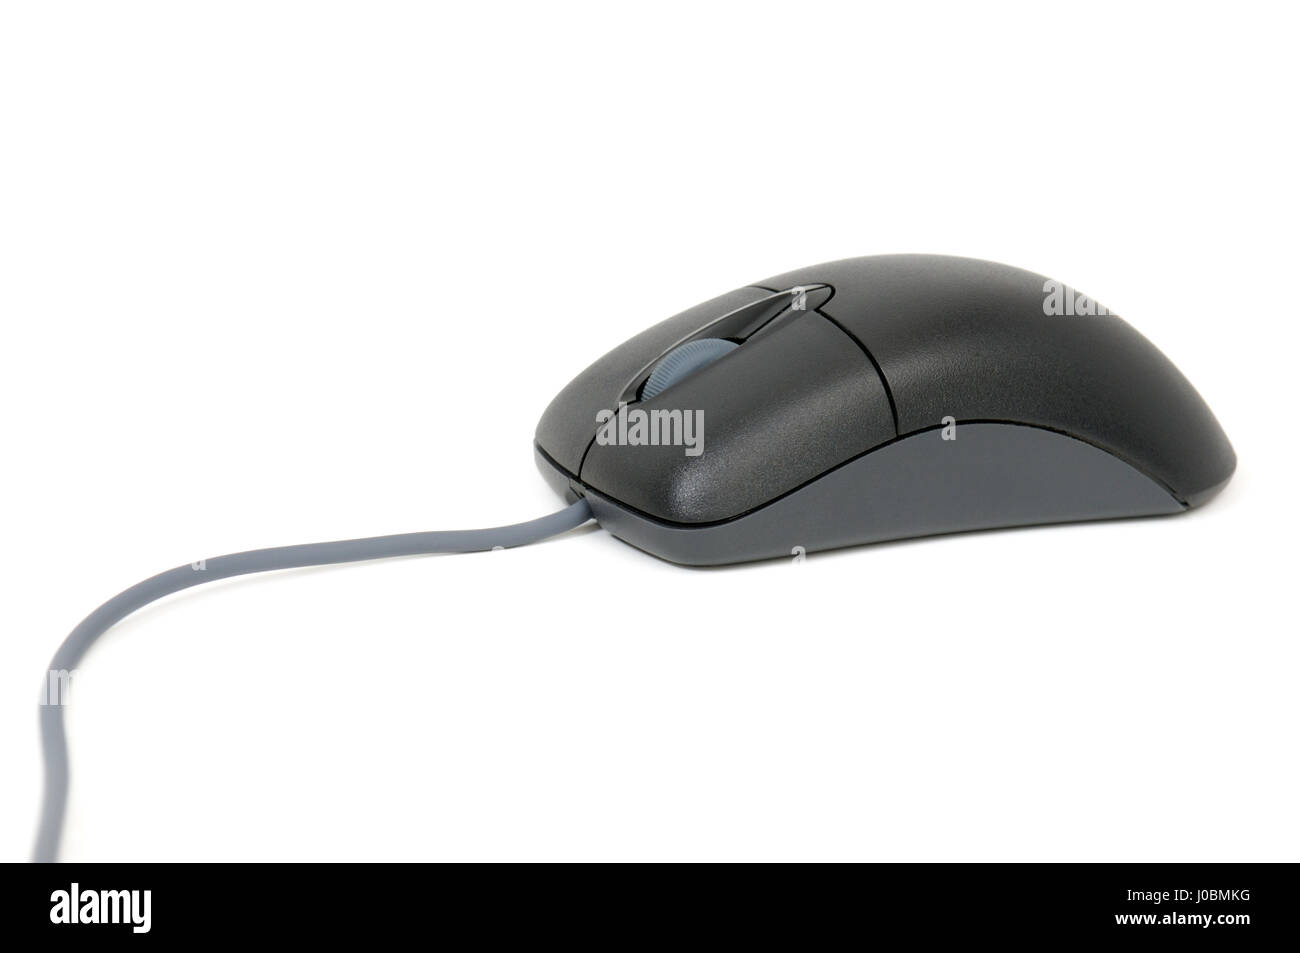 computer mouse isolated on a white background Stock Photo